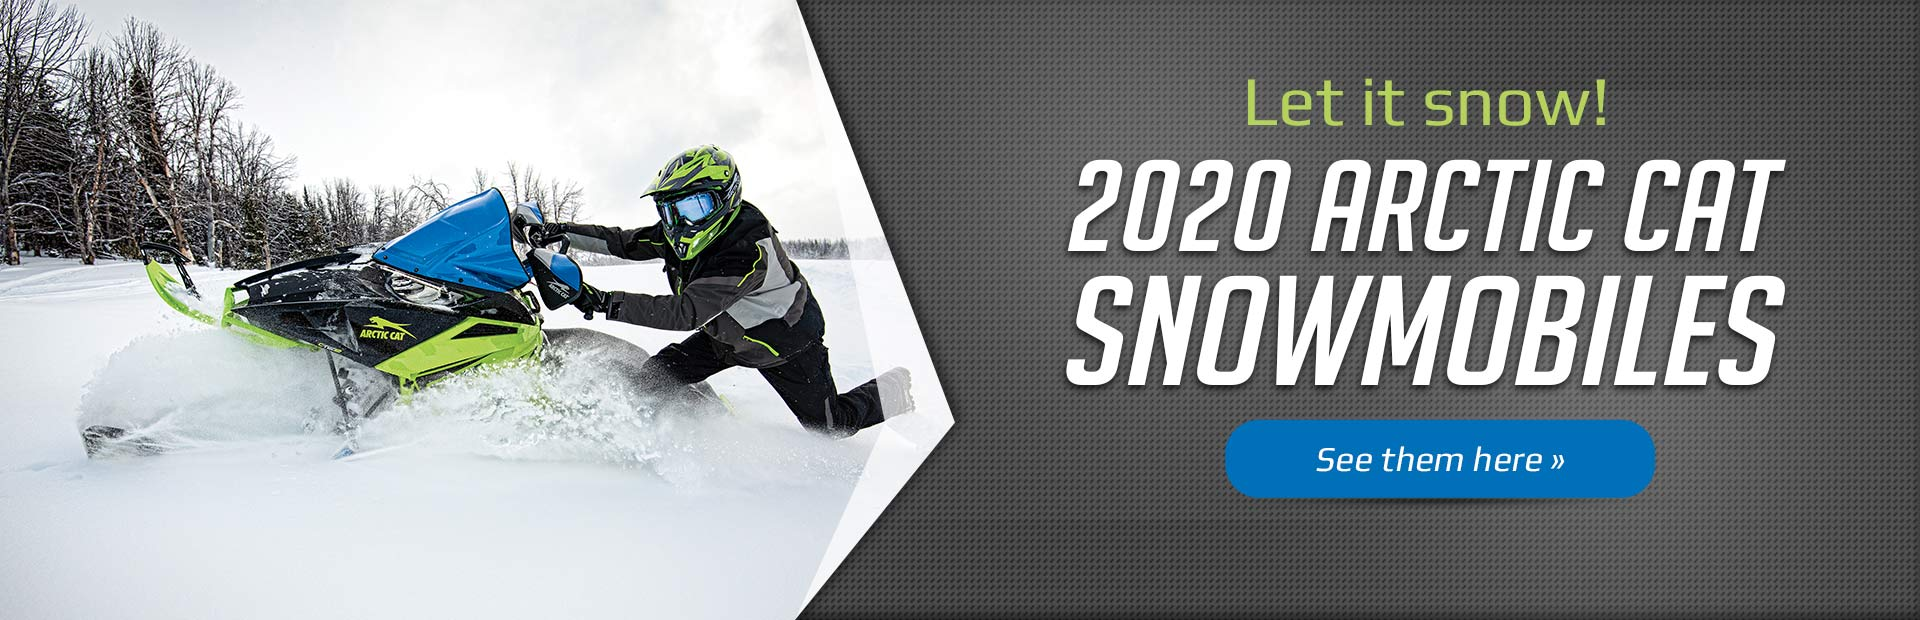 Let it snow! 2020 Arctic Cat Snowmobiles: Click here to view our models.